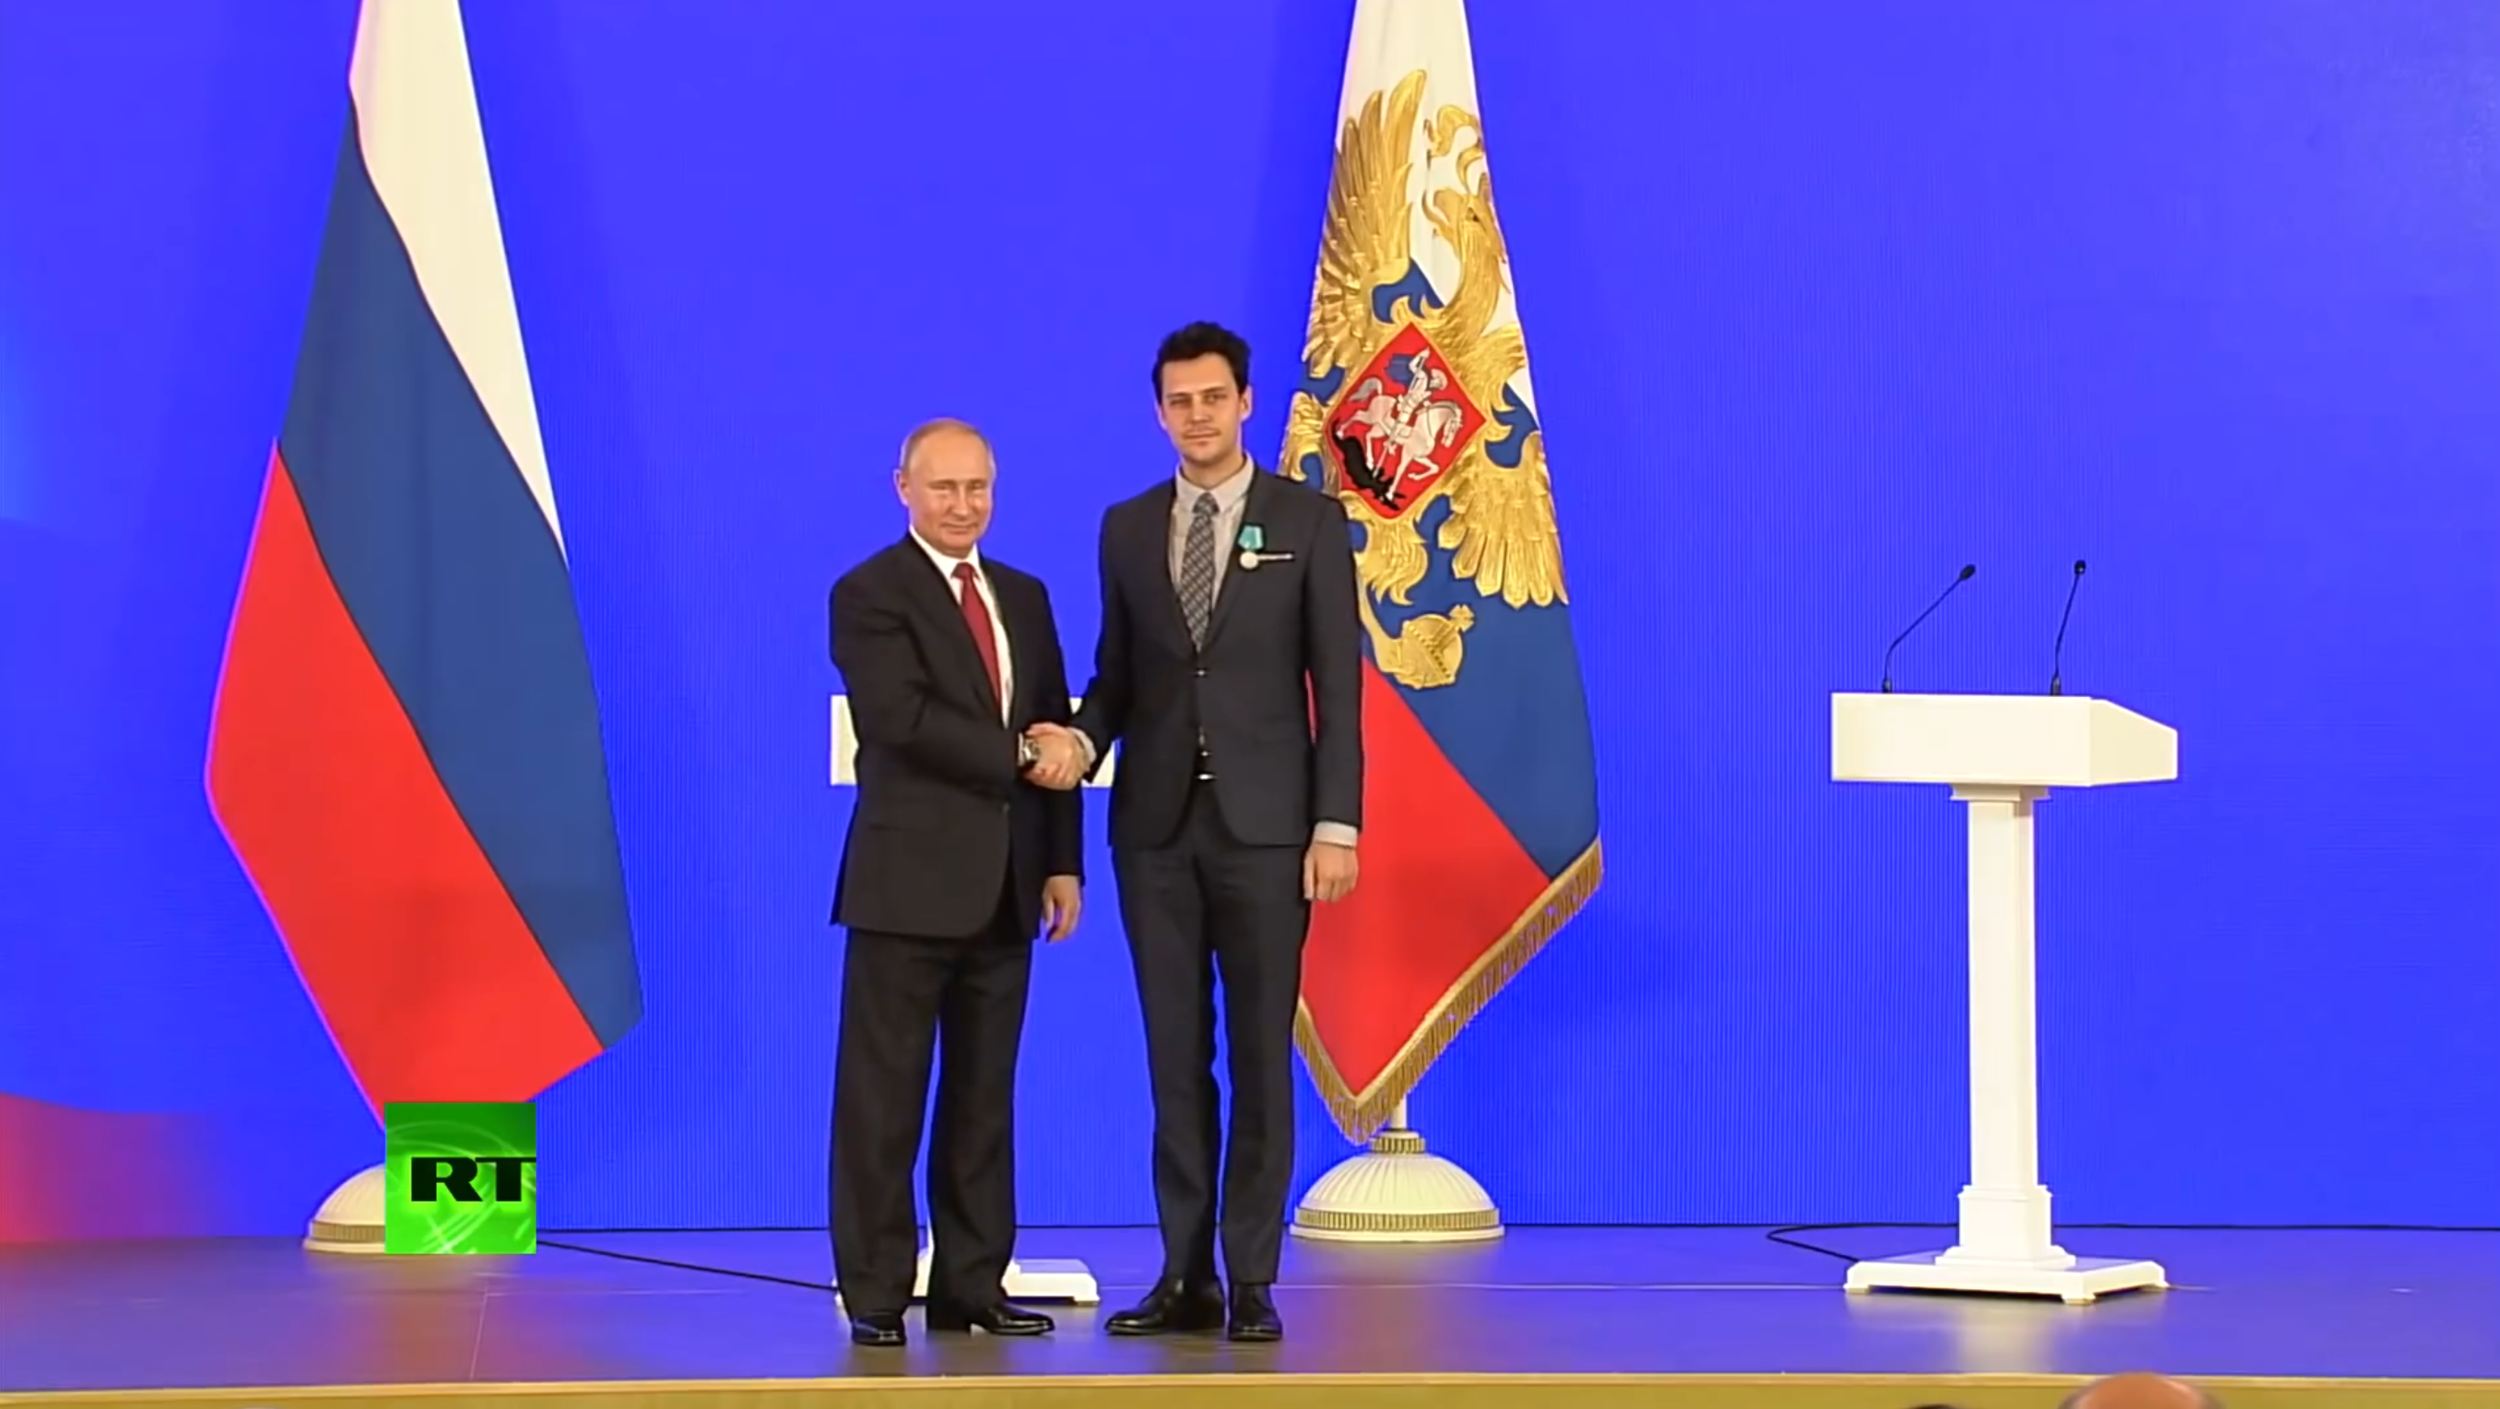 Milos being award the Medal of Pushkin in Moscow.